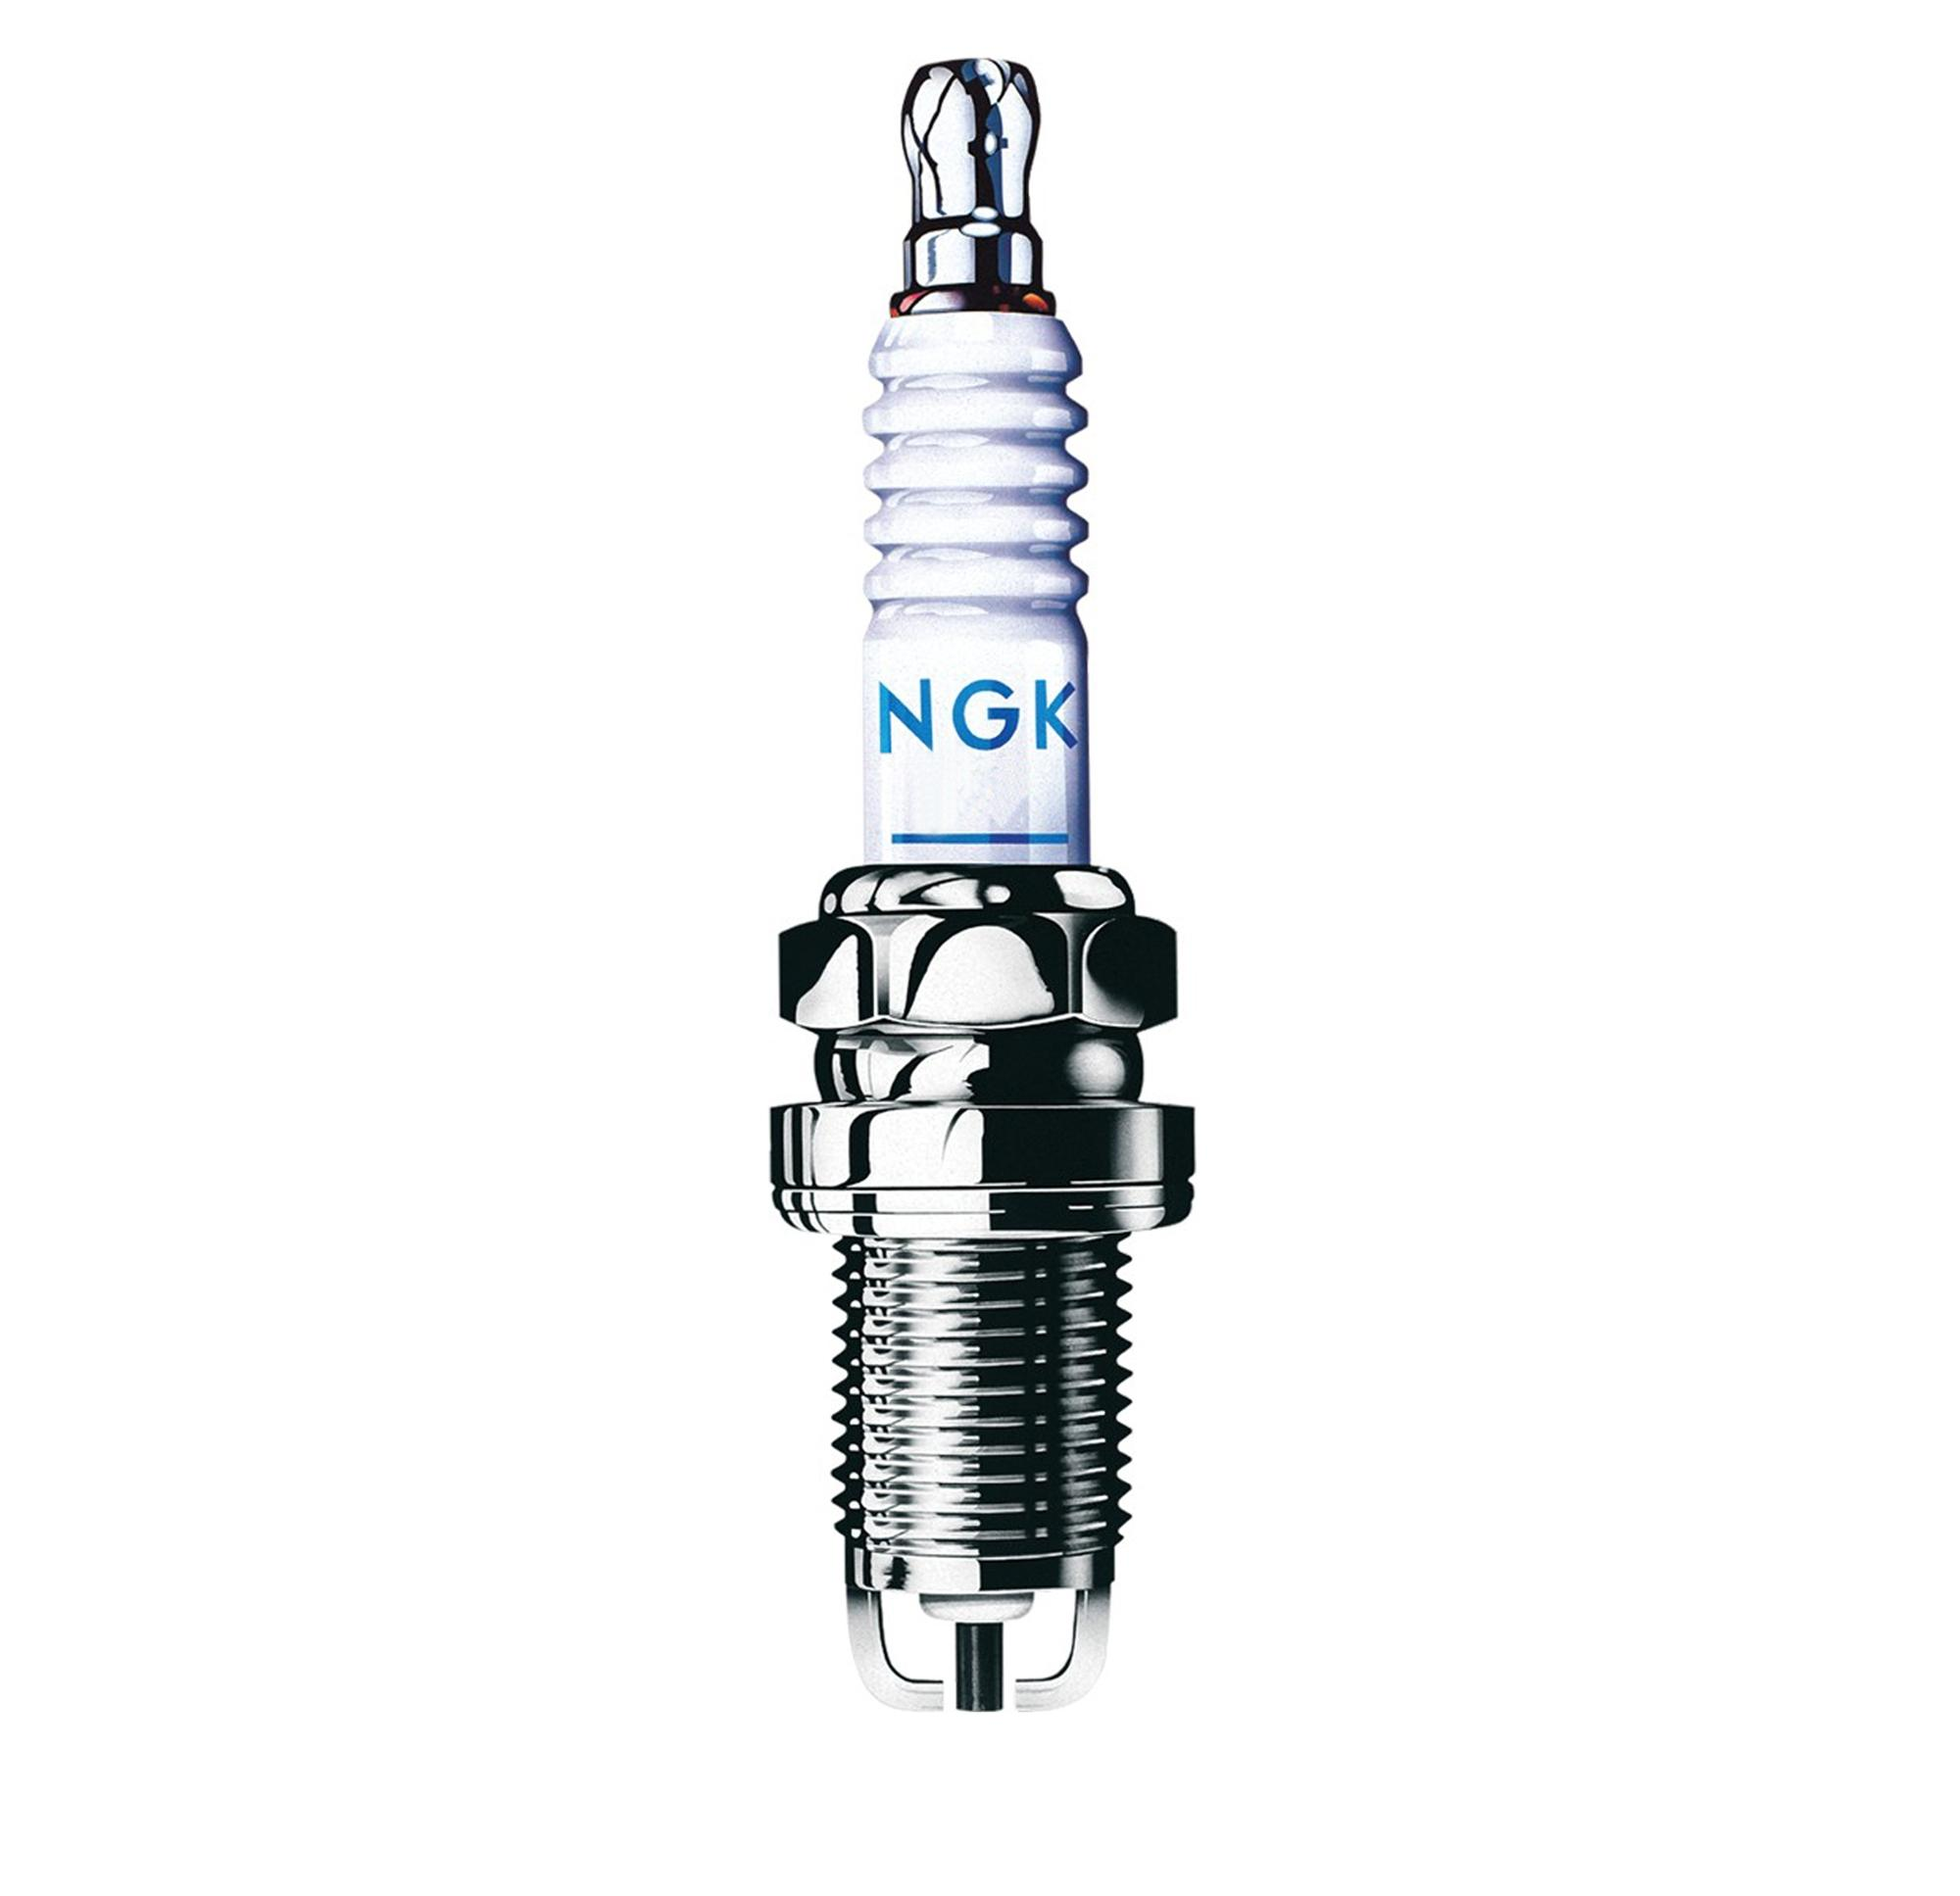 Ngk Motorcycle Spark Plug D8ea Brand New Unique Christmas